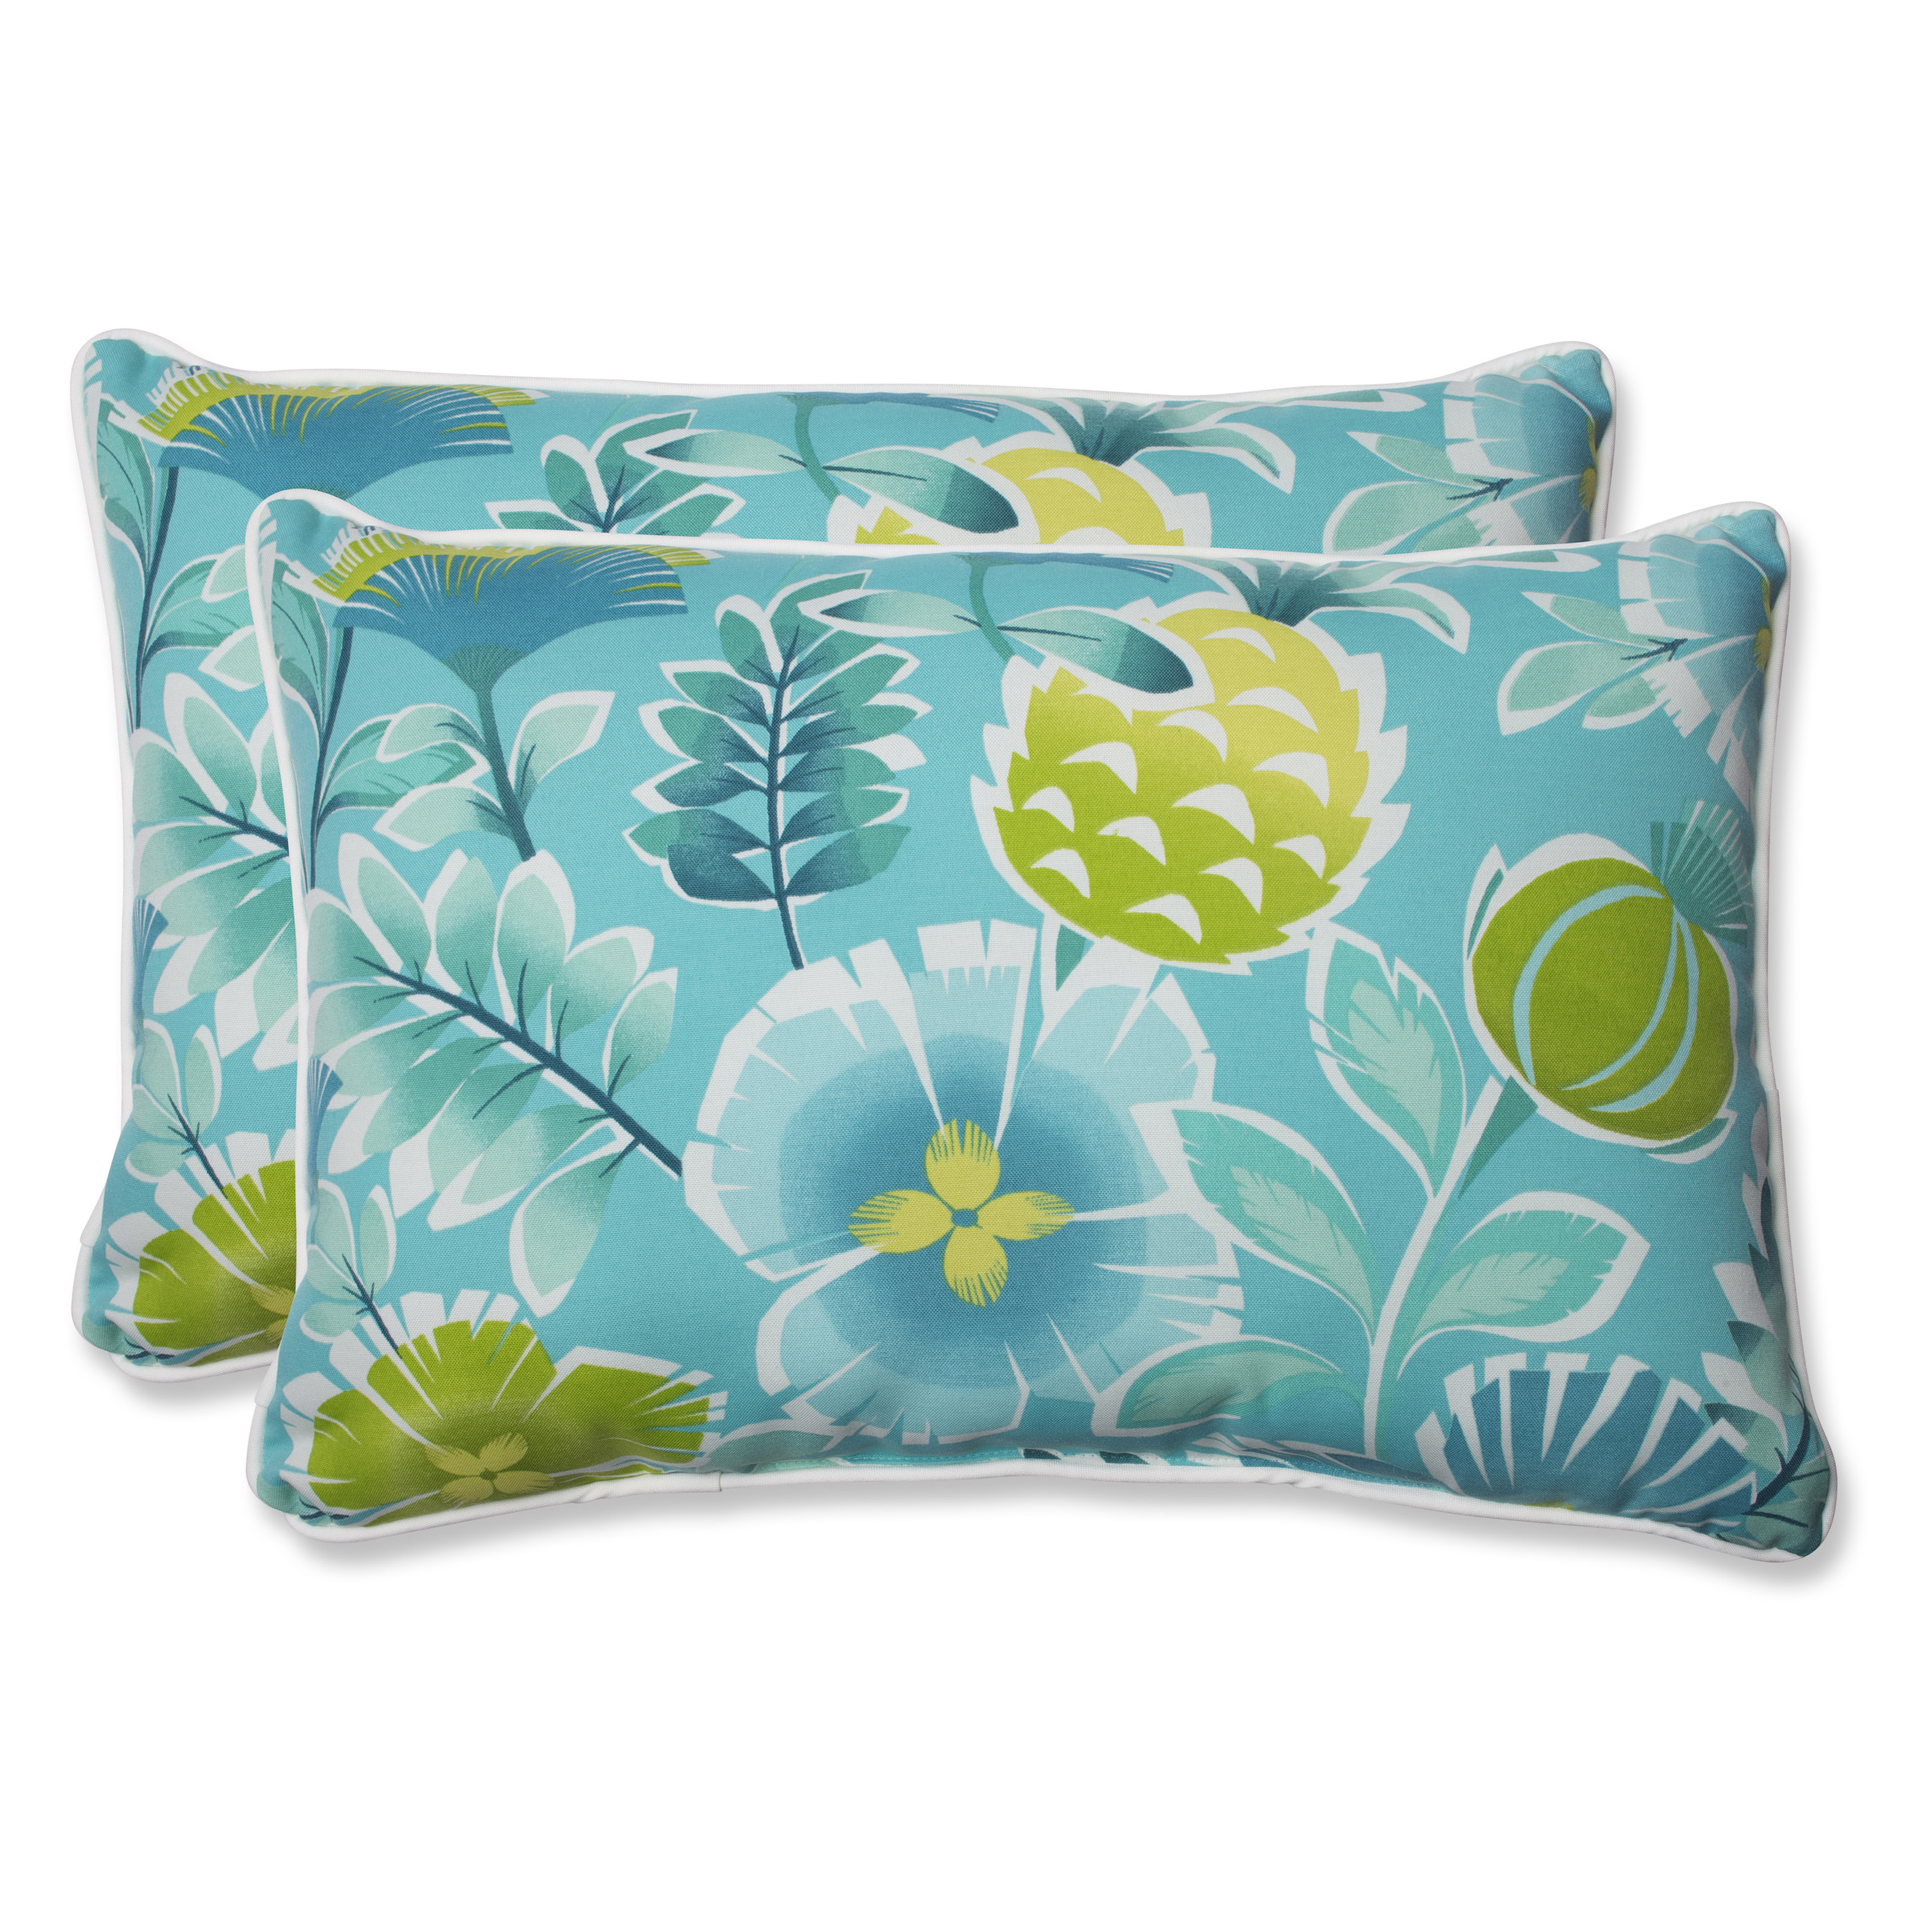 Turquoise Decorative Pillow Set : Pillow Perfect Calypso Turquoise Over-sized Outdoor Rectangle Throw Pillow - Set of 2 - Outdoor ...